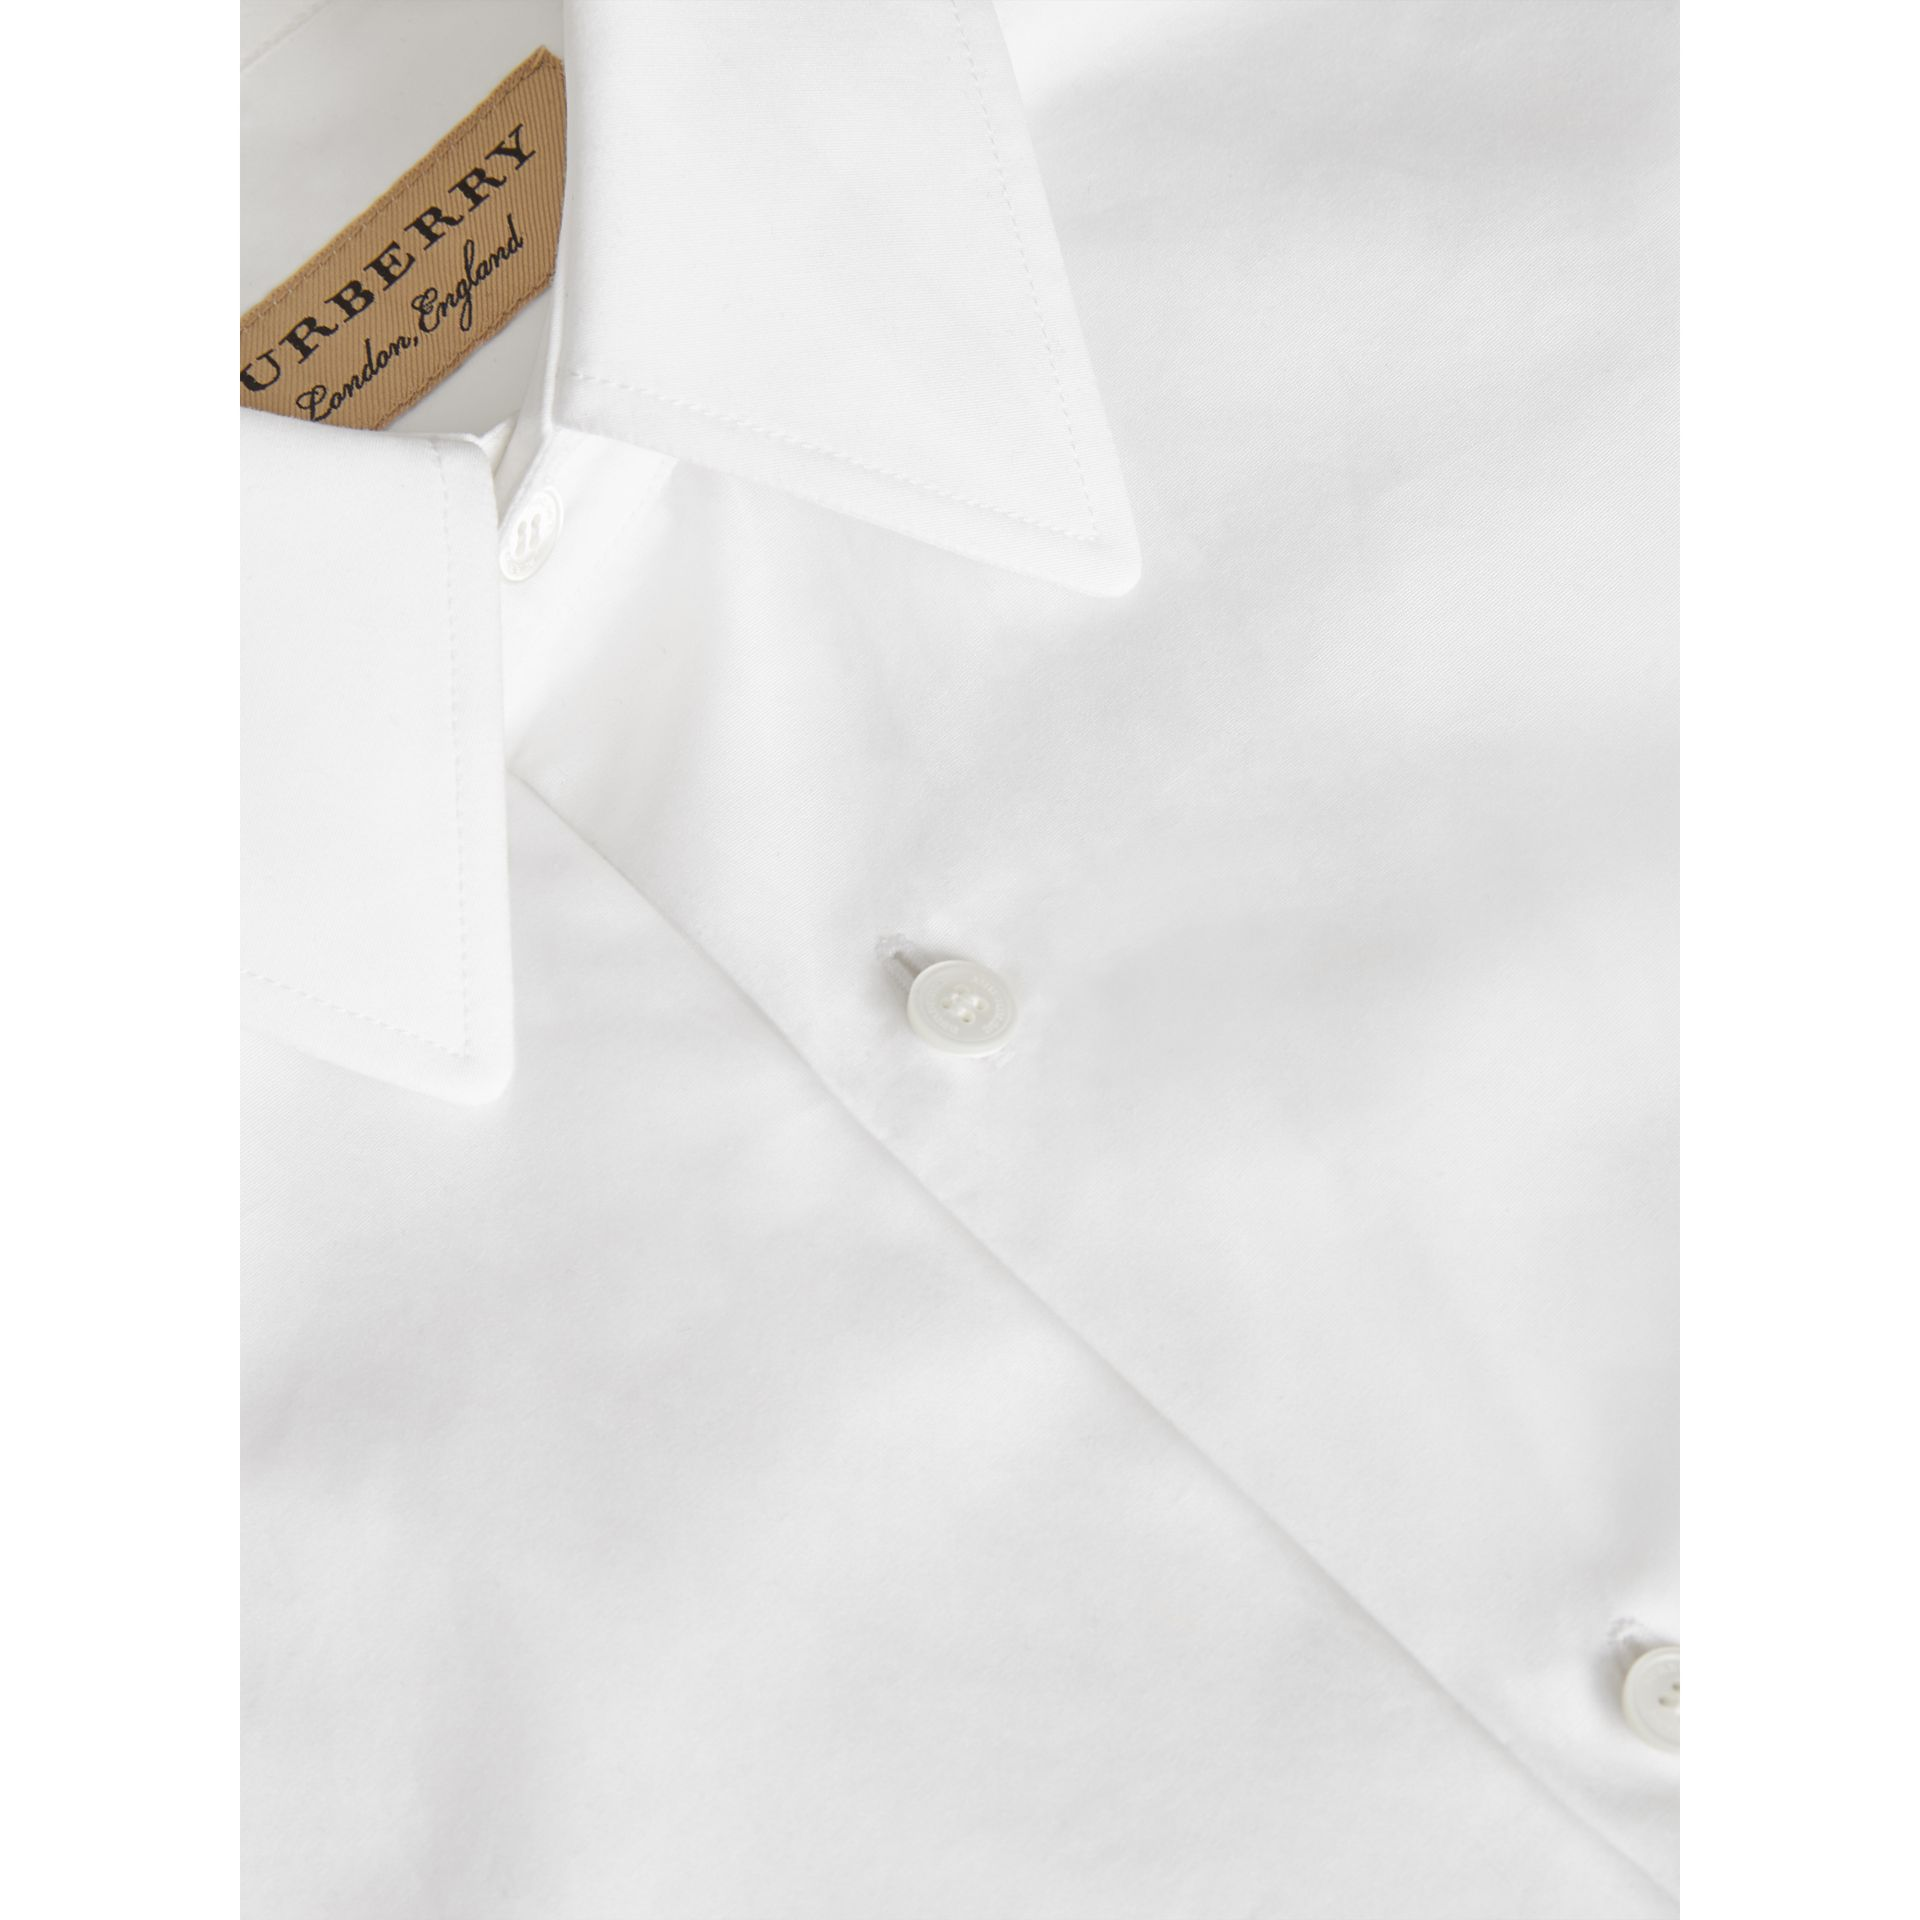 Slim Fit Cotton Poplin Shirt in White - Men | Burberry - gallery image 5